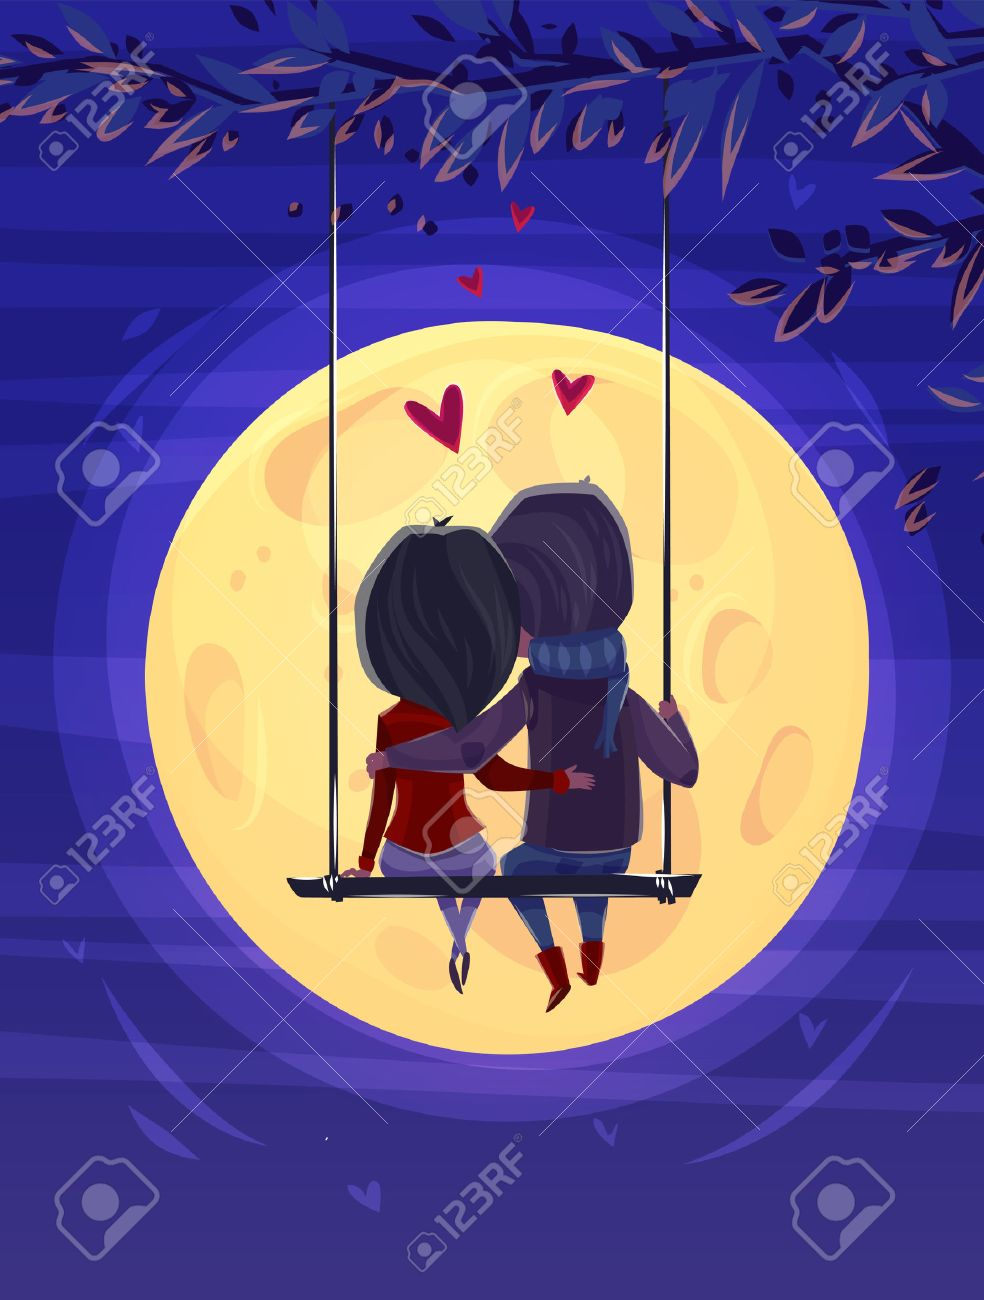 Two lovers sitting on the swing on the moon background. Modern design stylish illustration. Retro flat background. Valentines Day Card. - 50571078